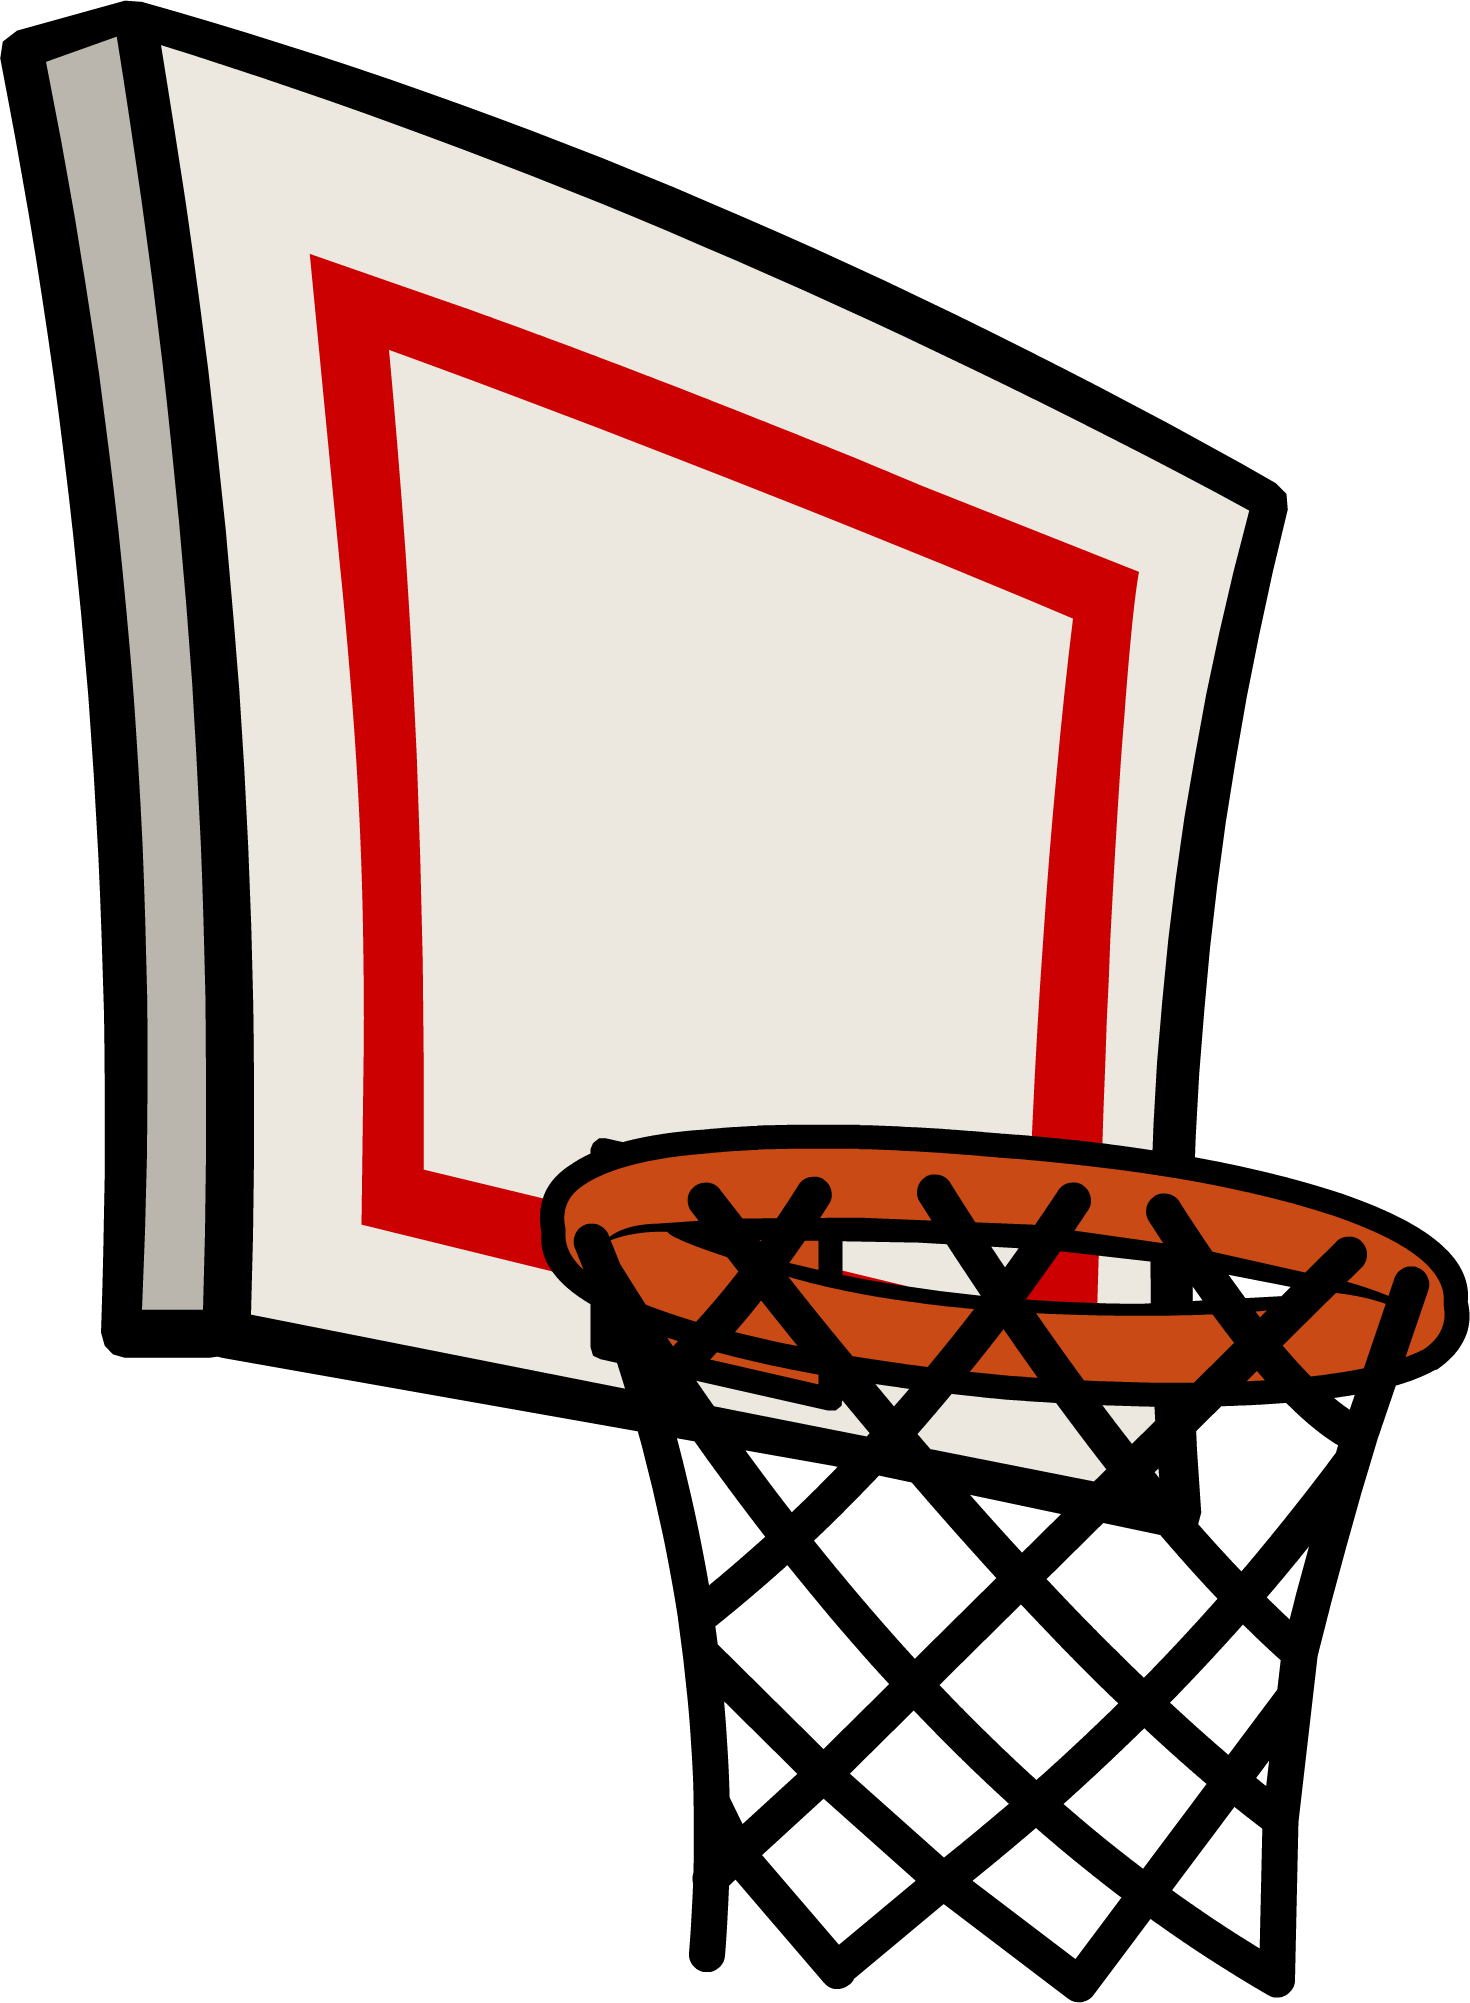 Hoop clipart baskeball. Red basketball clip art